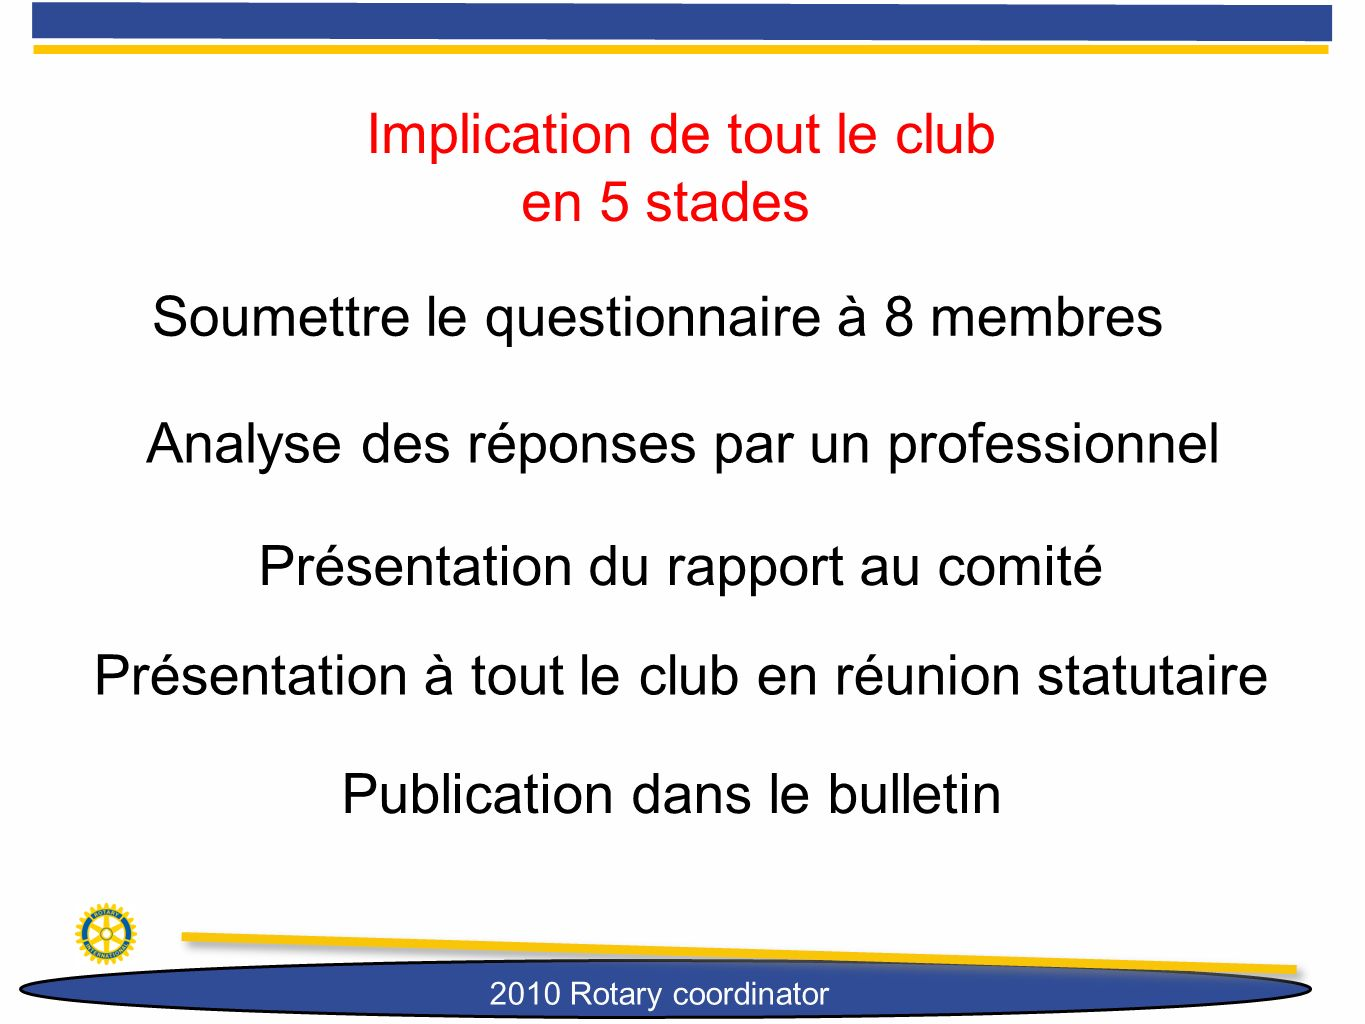 Implication de tout le club en 5 stades